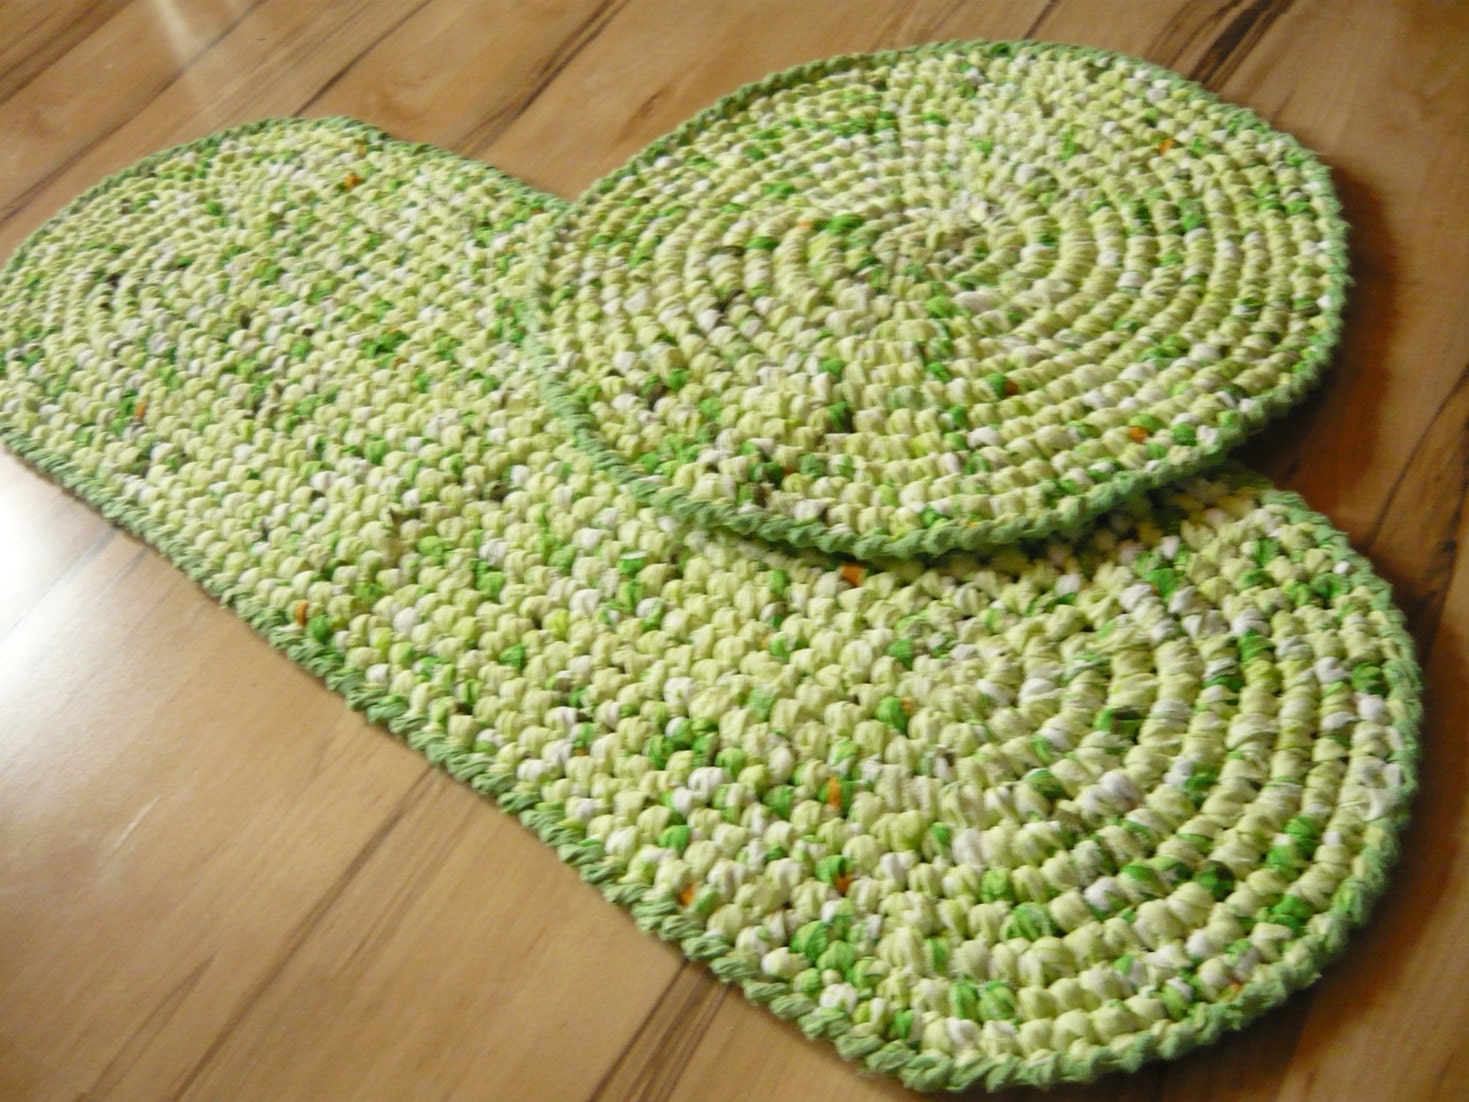 Rag Rugs Set Bathroom Rugs Set of 2 Green shades Oval and